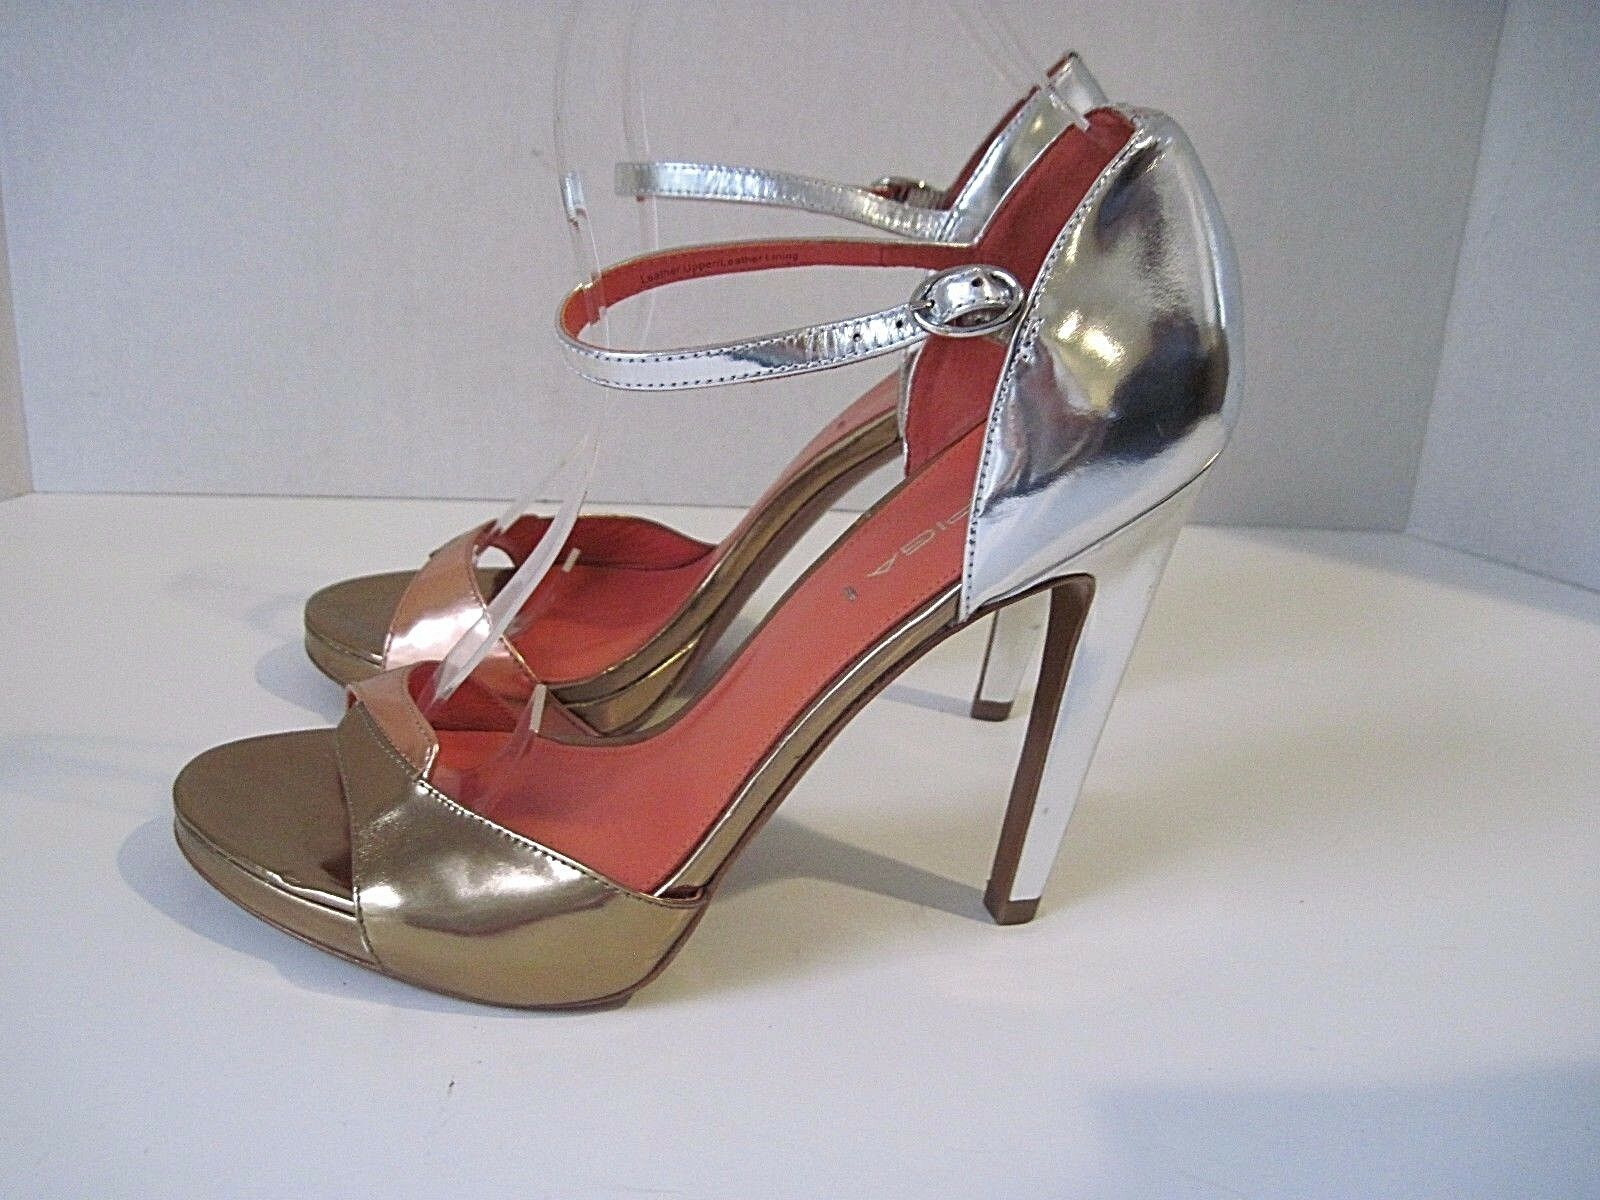 VIA SPIGA gold Silver Leather Pumps Heels Ankle Straps Size US 8 EU 39 NEW